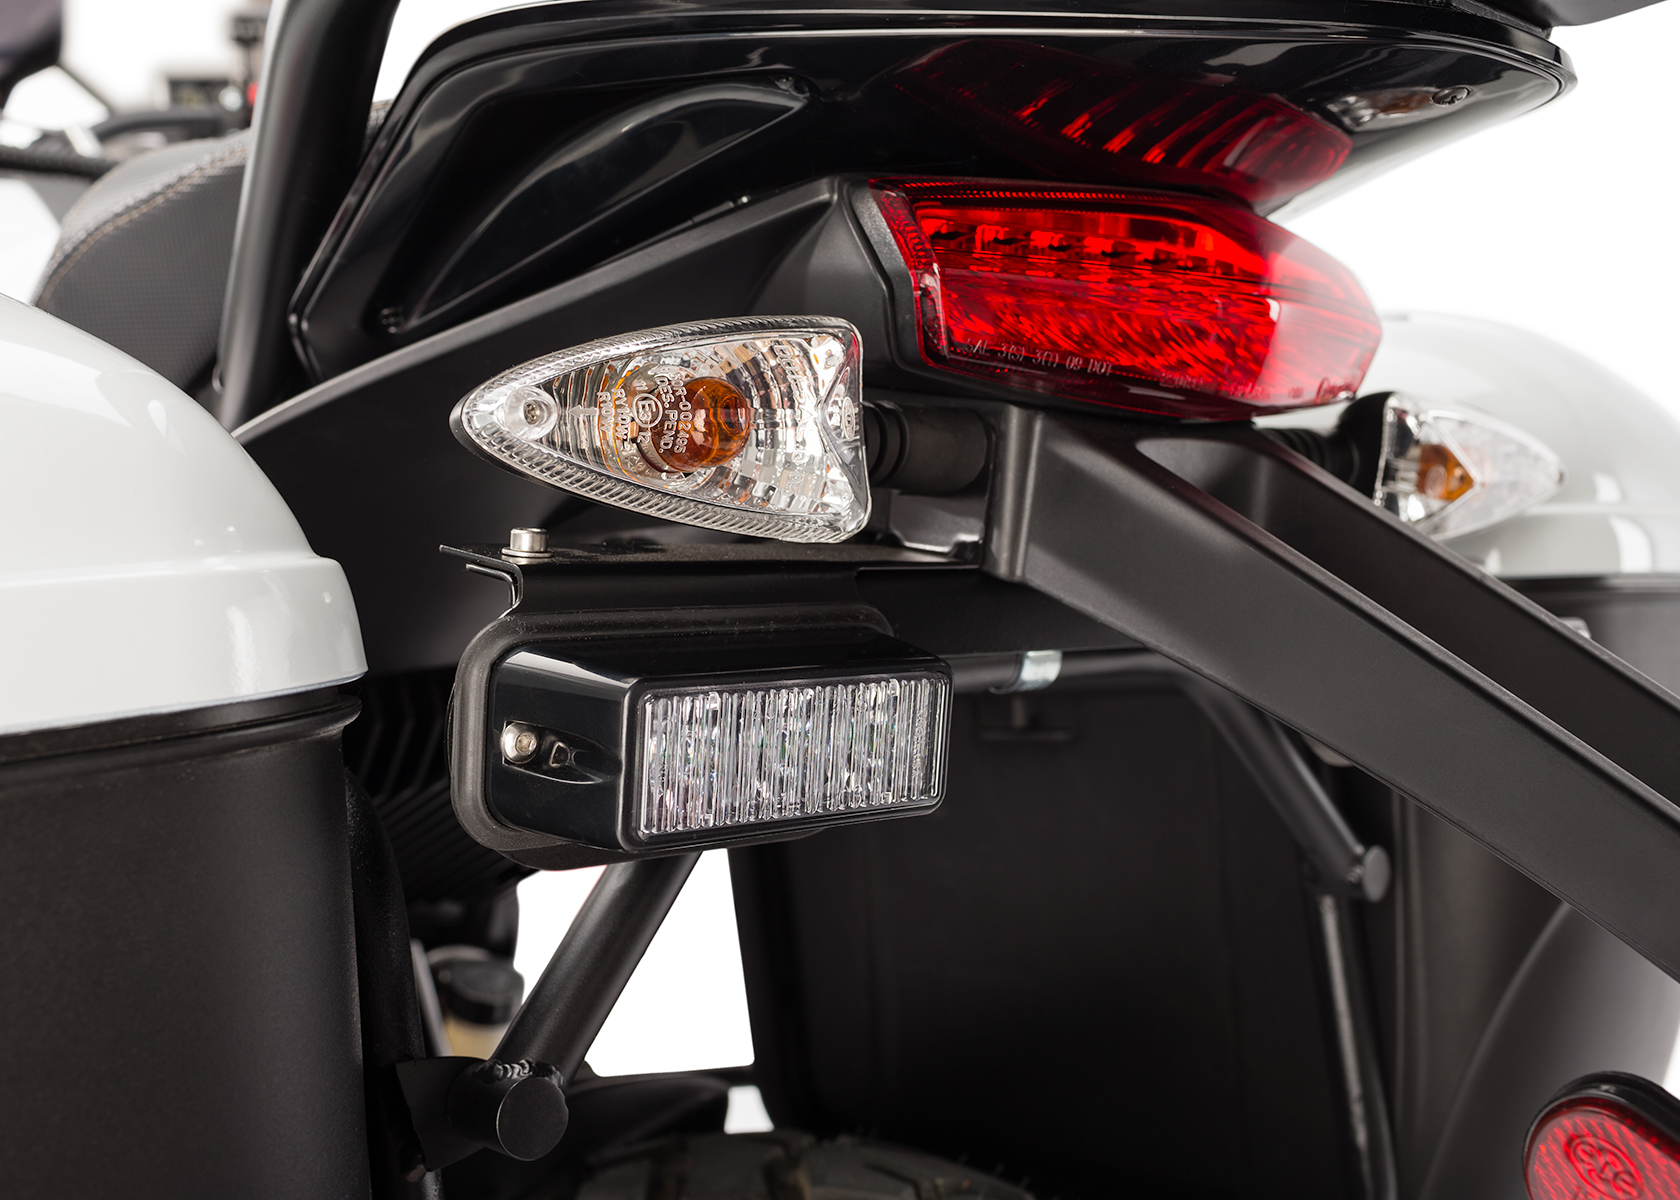 2013 Zero Police Electric Motorcycle: Rear lights